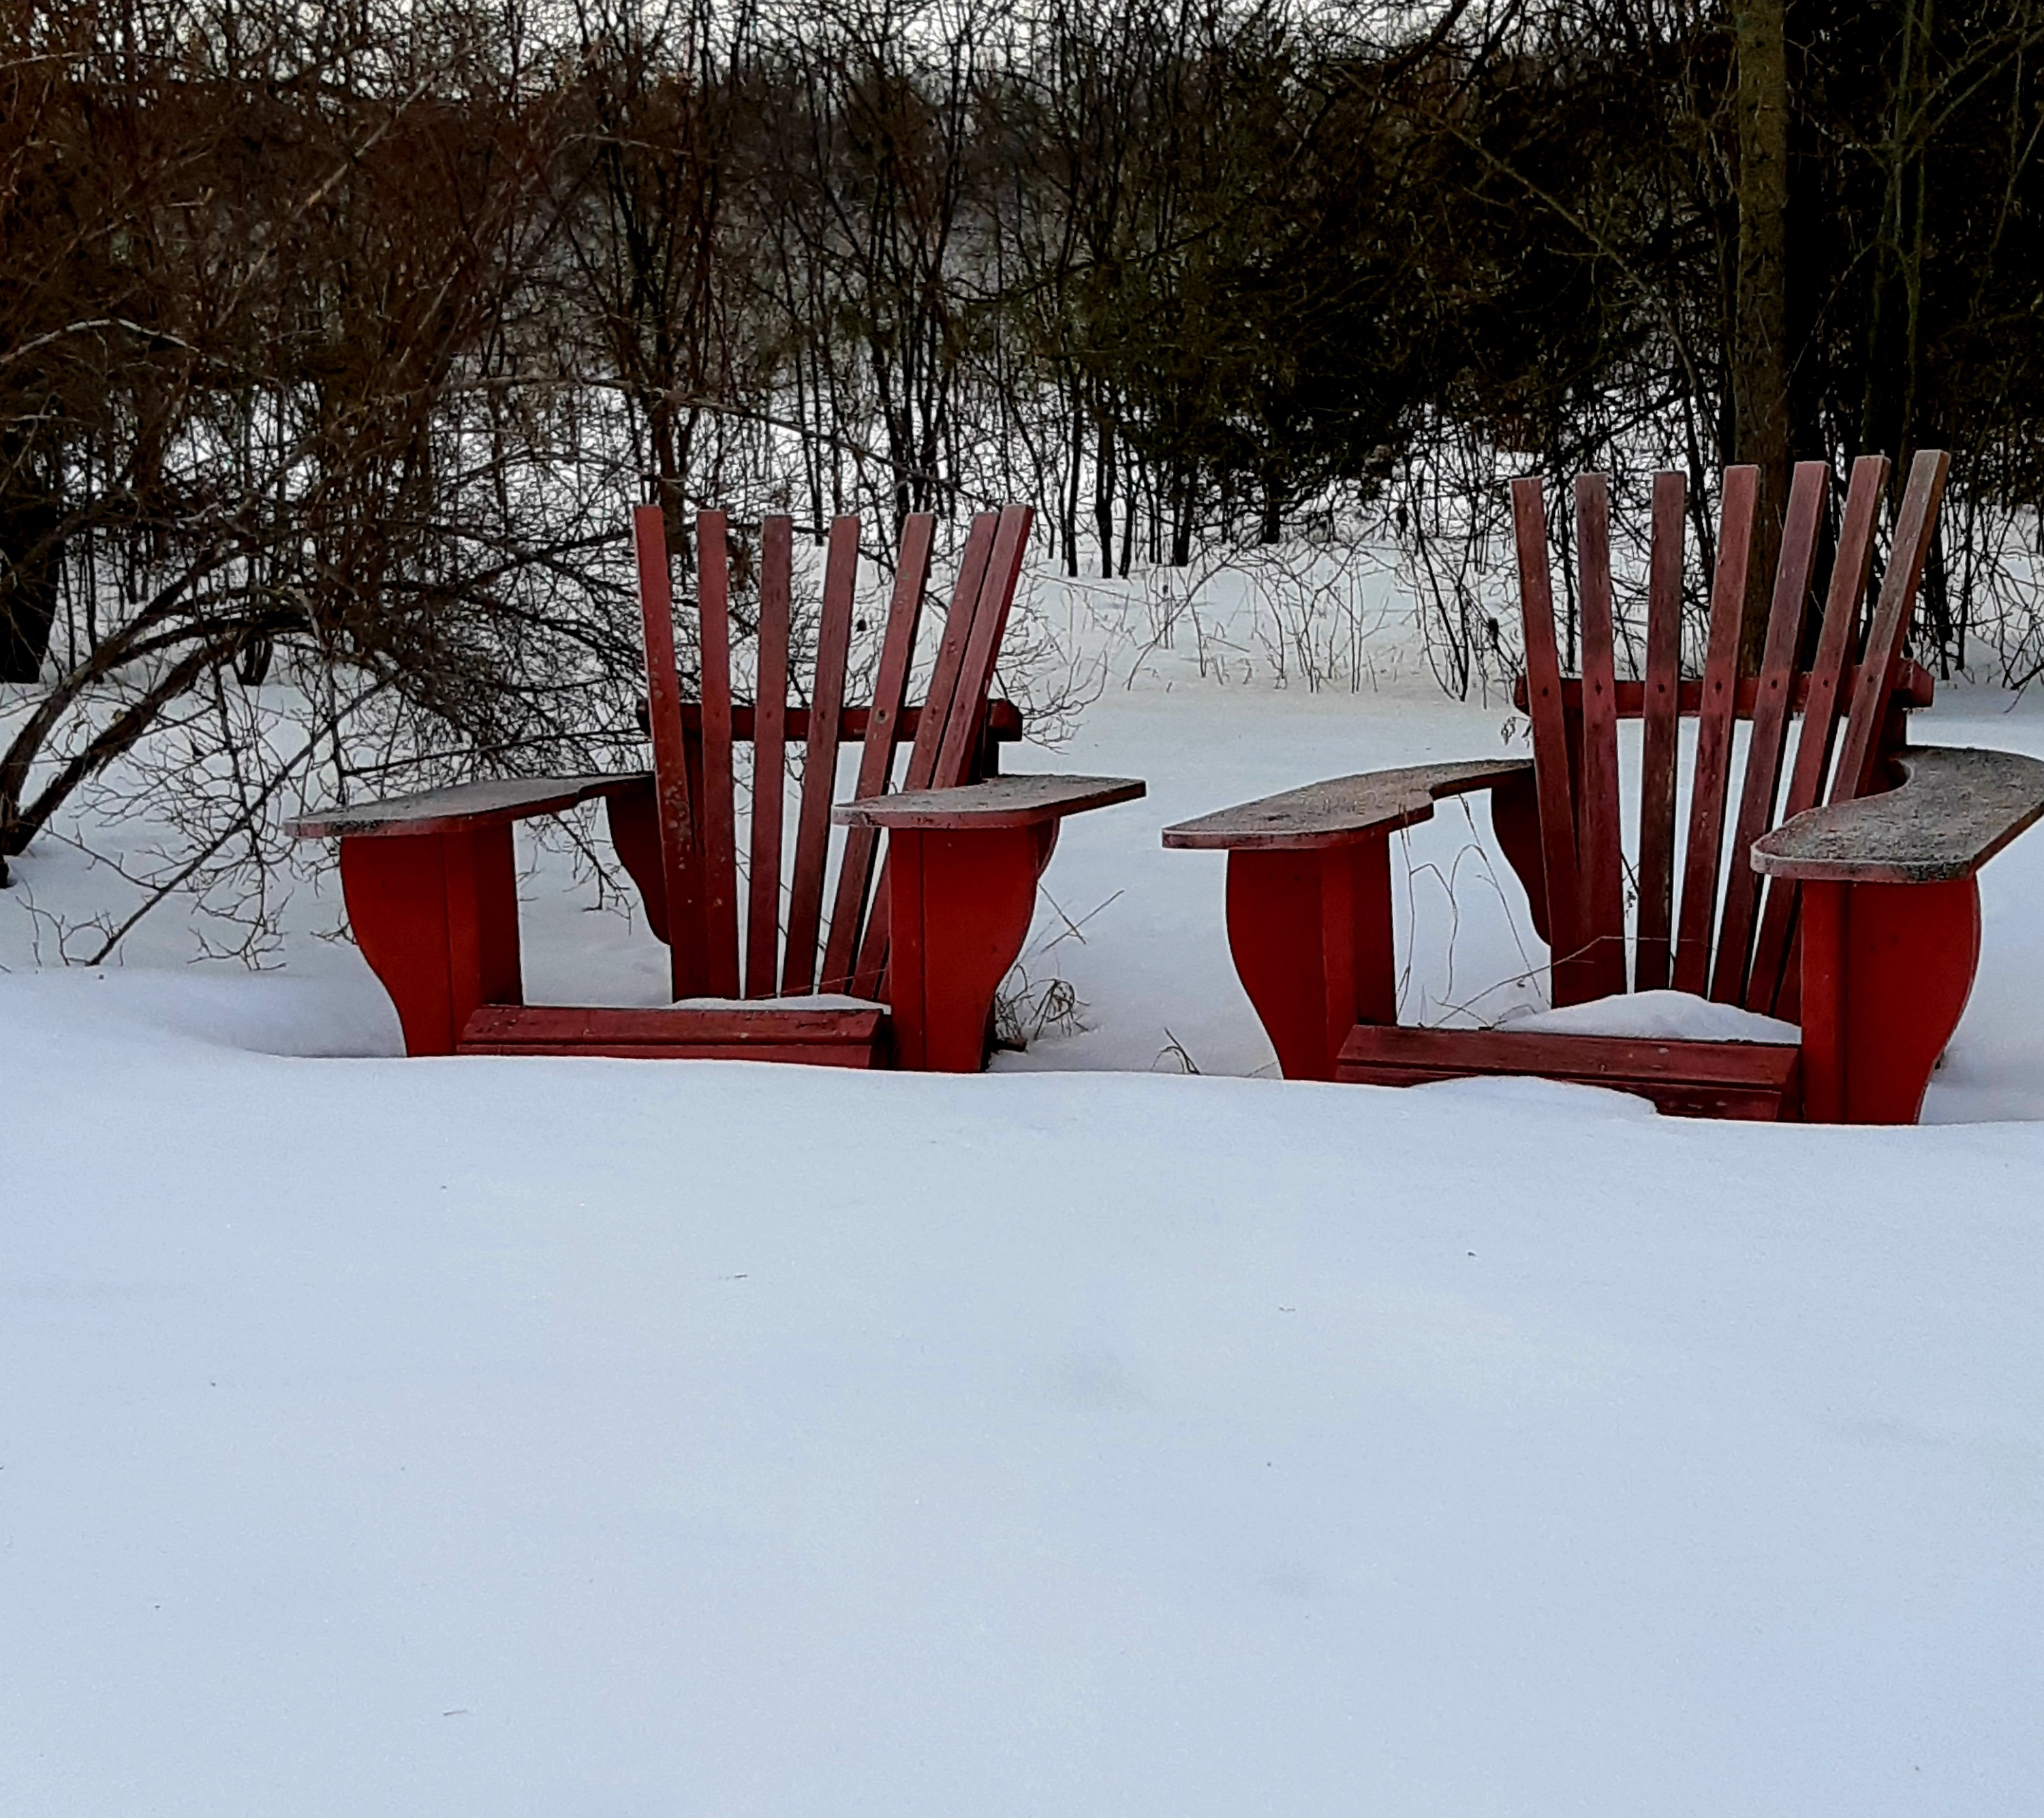 Picture of red Muskoka chairs in the snow